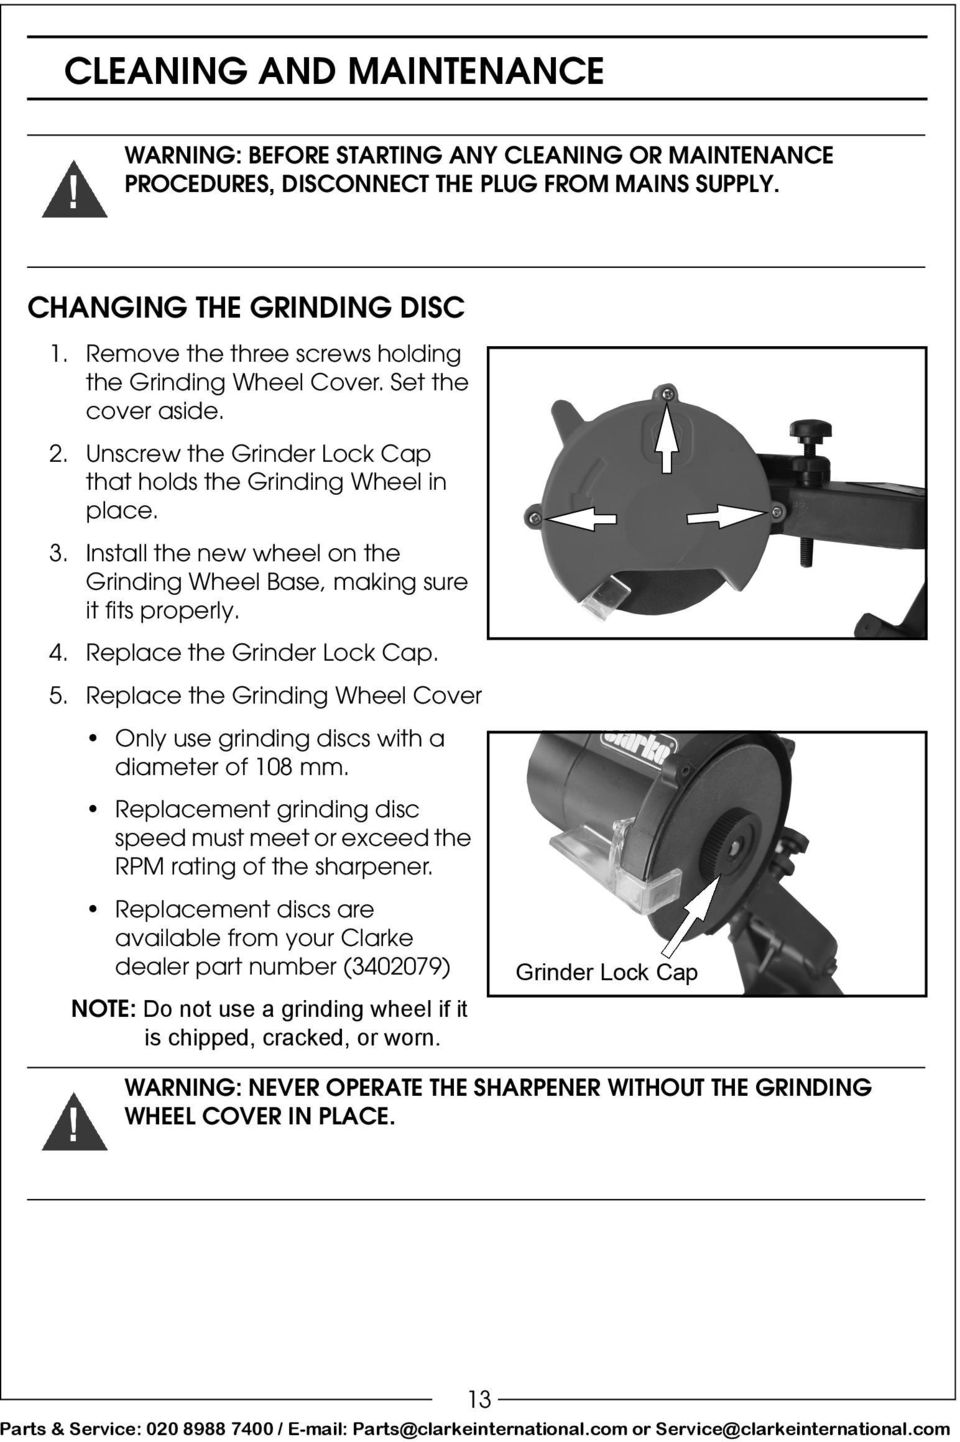 Install the new wheel on the Grinding Wheel Base, making sure it fits properly. 4. Replace the Grinder Lock Cap. 5. Replace the Grinding Wheel Cover Only use grinding discs with a diameter of 108 mm.